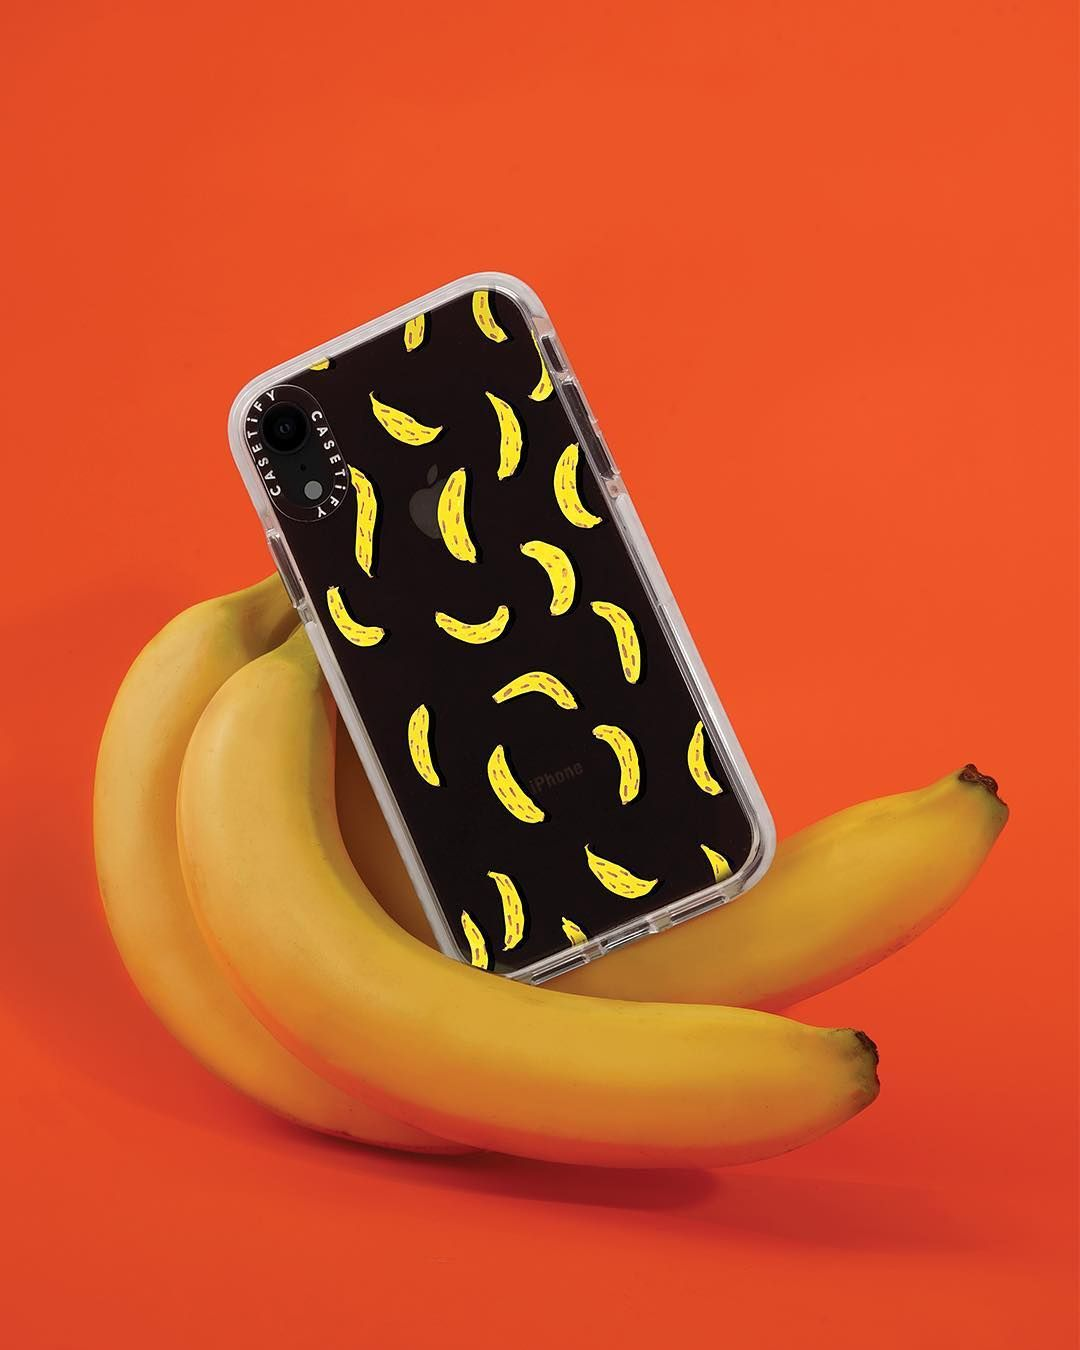 9a0c3a834d Casetify Impact iPhone XR Case featuring our favorite fruit, B-A-N-A-N-A-S!  Get your fruit iPhone